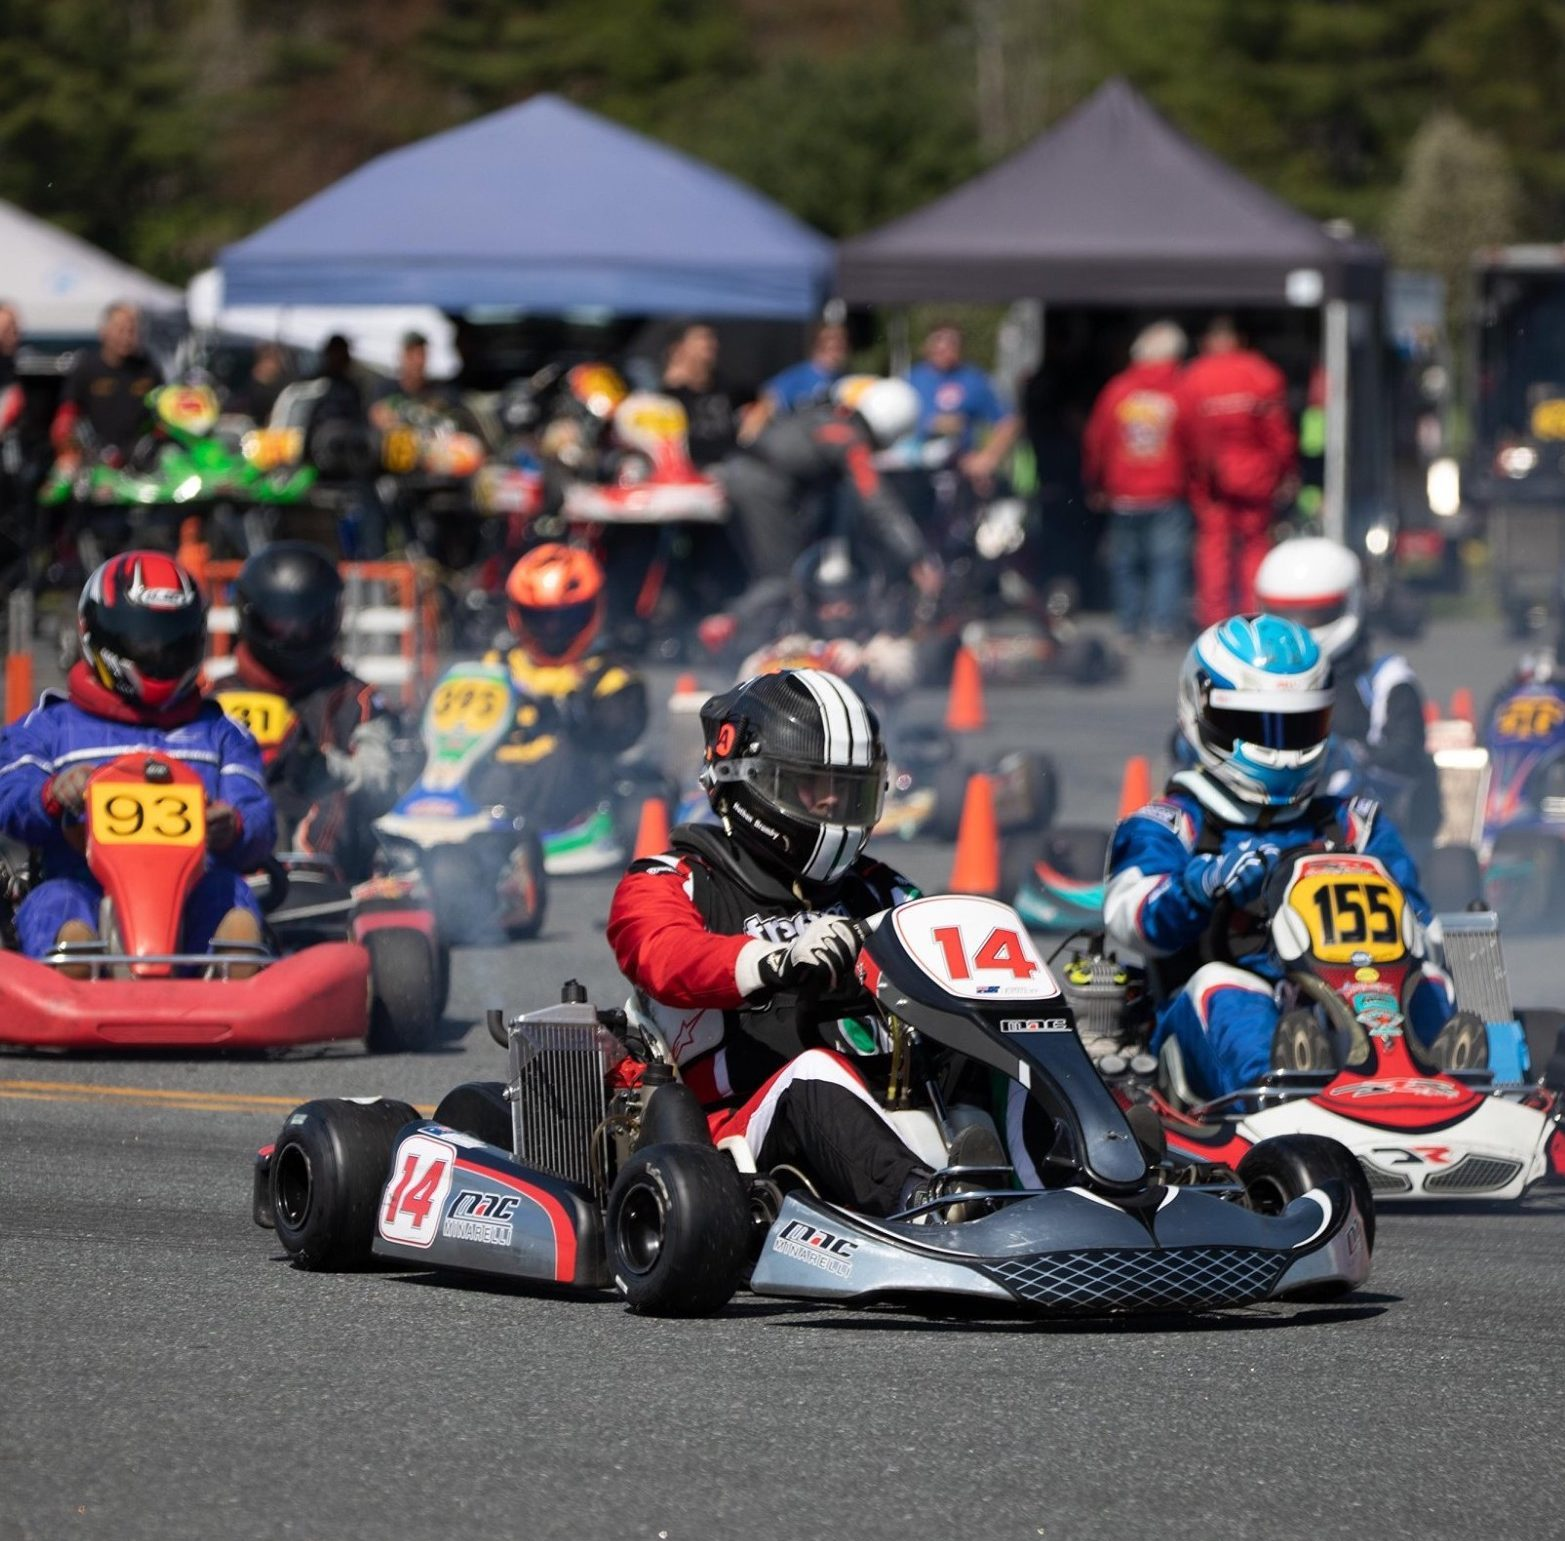 NHKA Racing Series – Real Go-Kart Racing for Adults and Kids in New